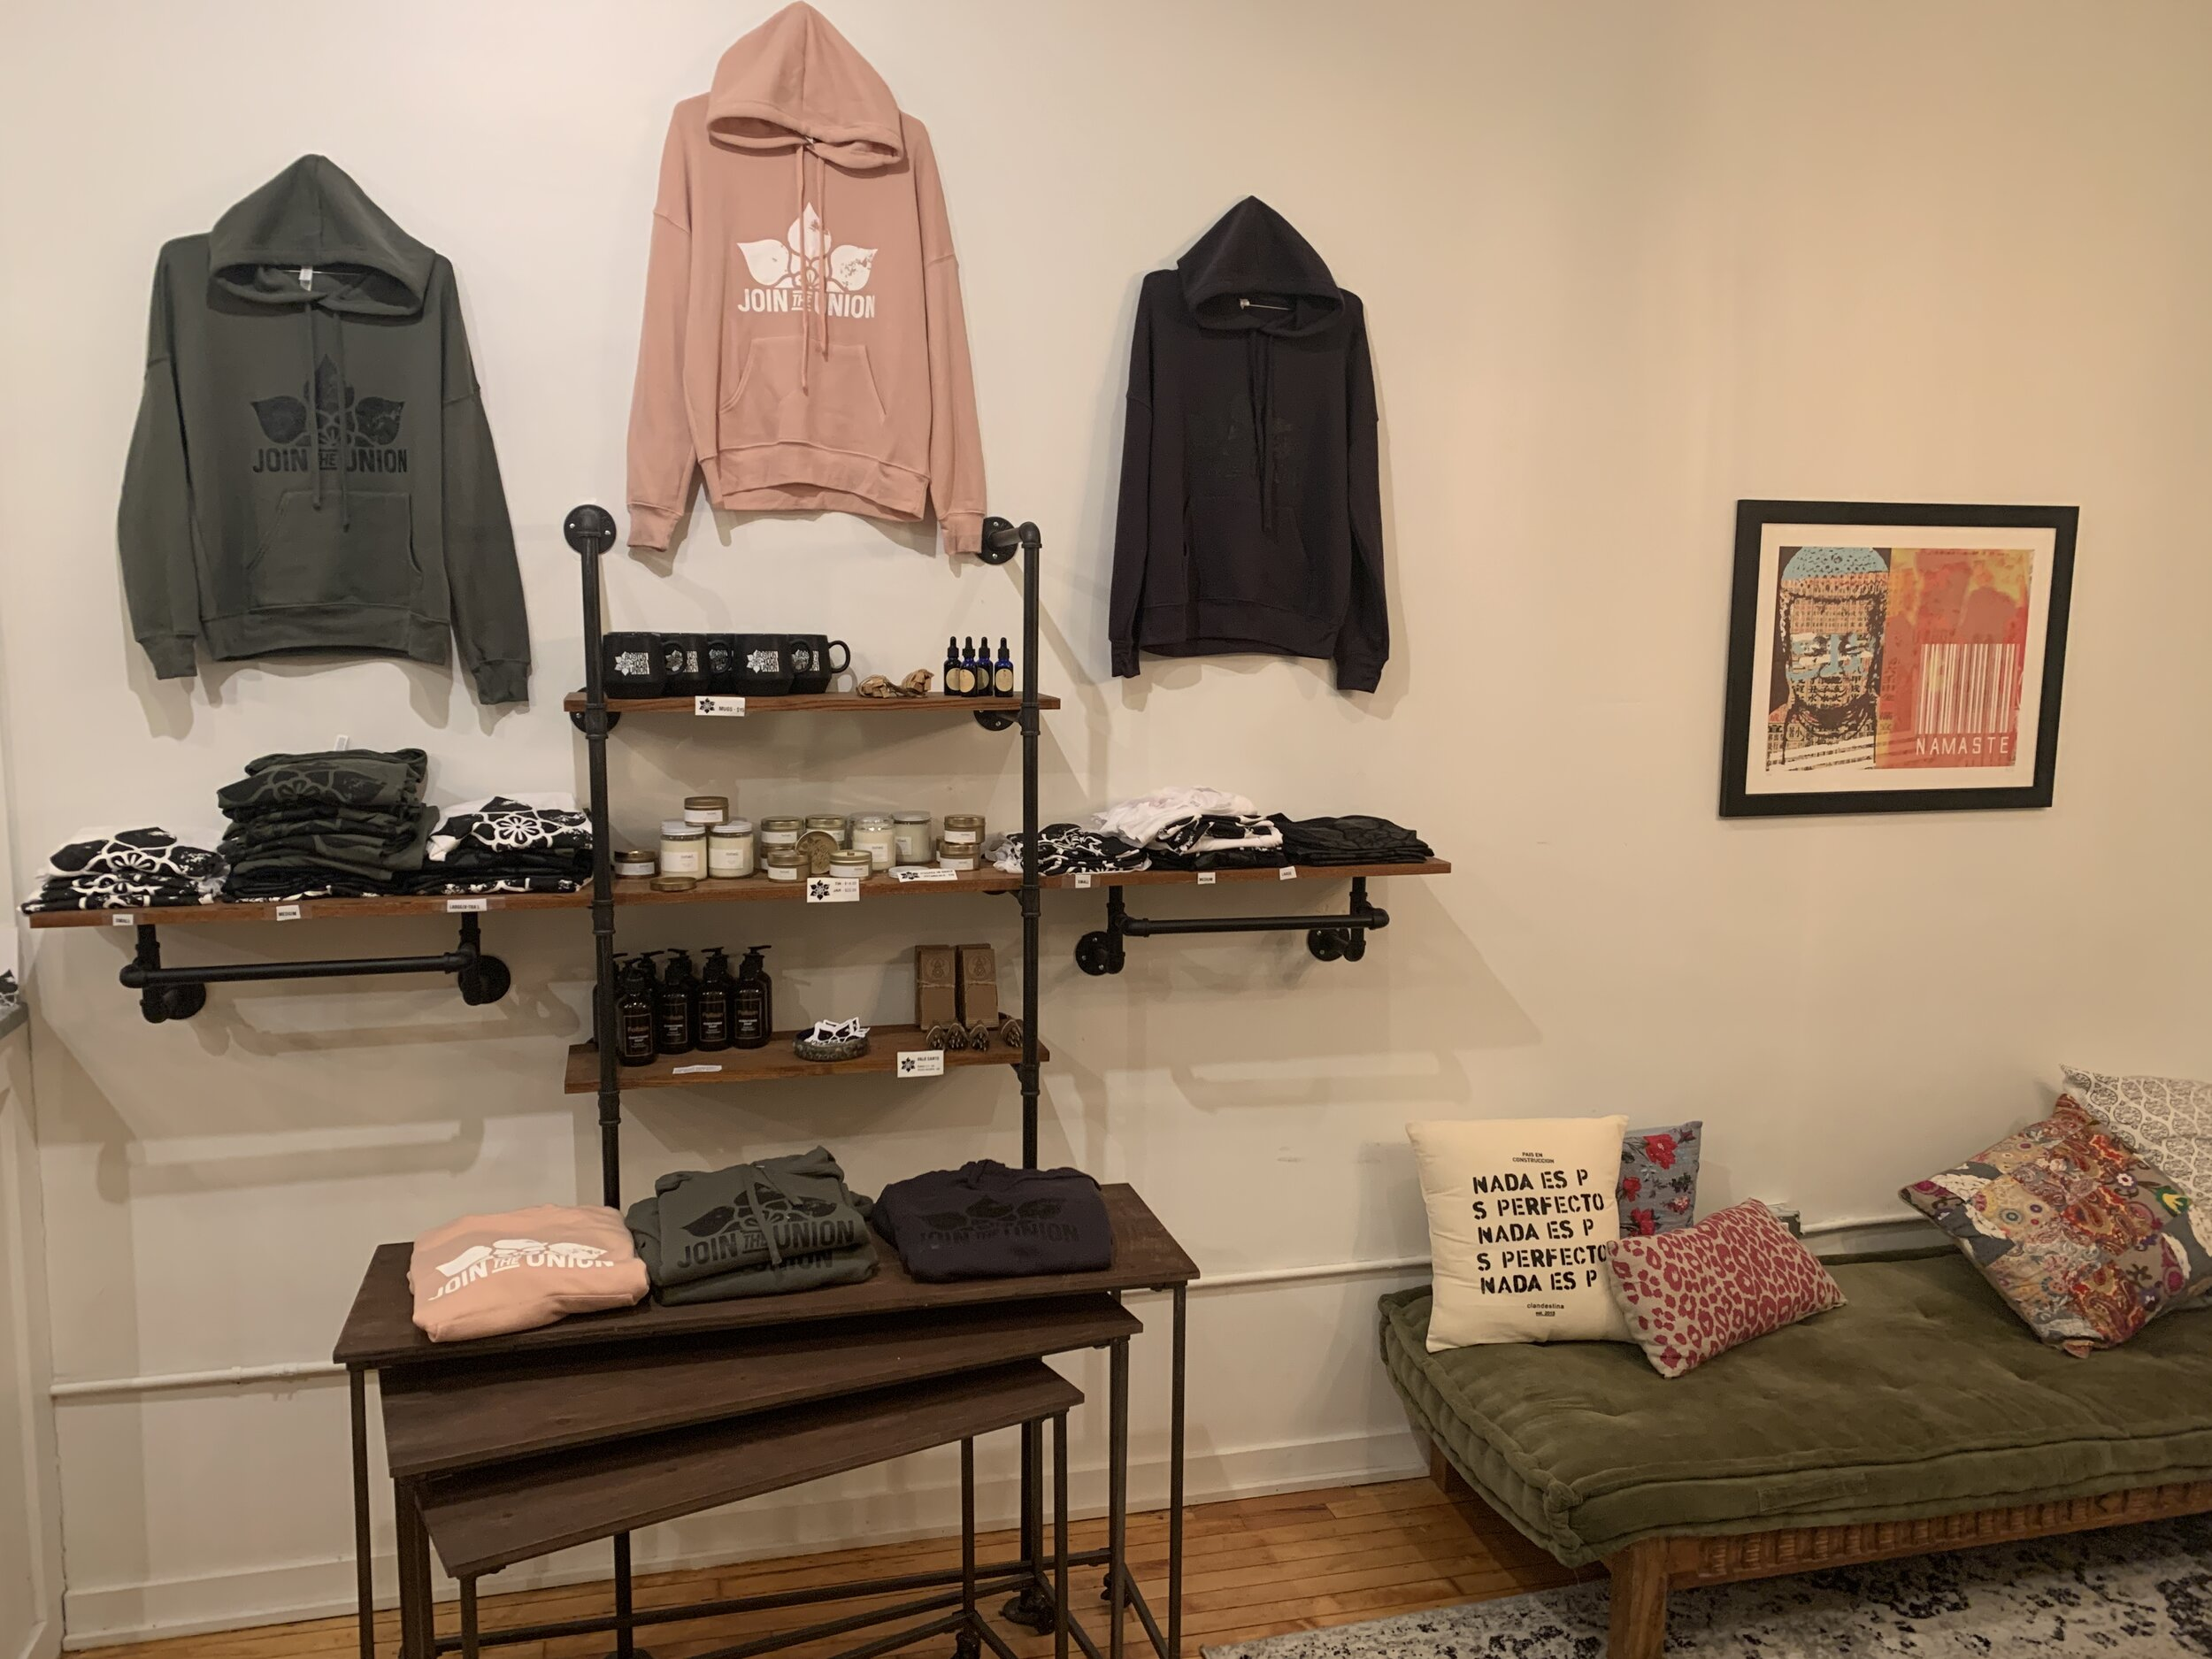 Shop Online For Boston Yoga Union Merch Gifts Clothing More Boston Yoga Union In Studio Live Streaming Video On Demand